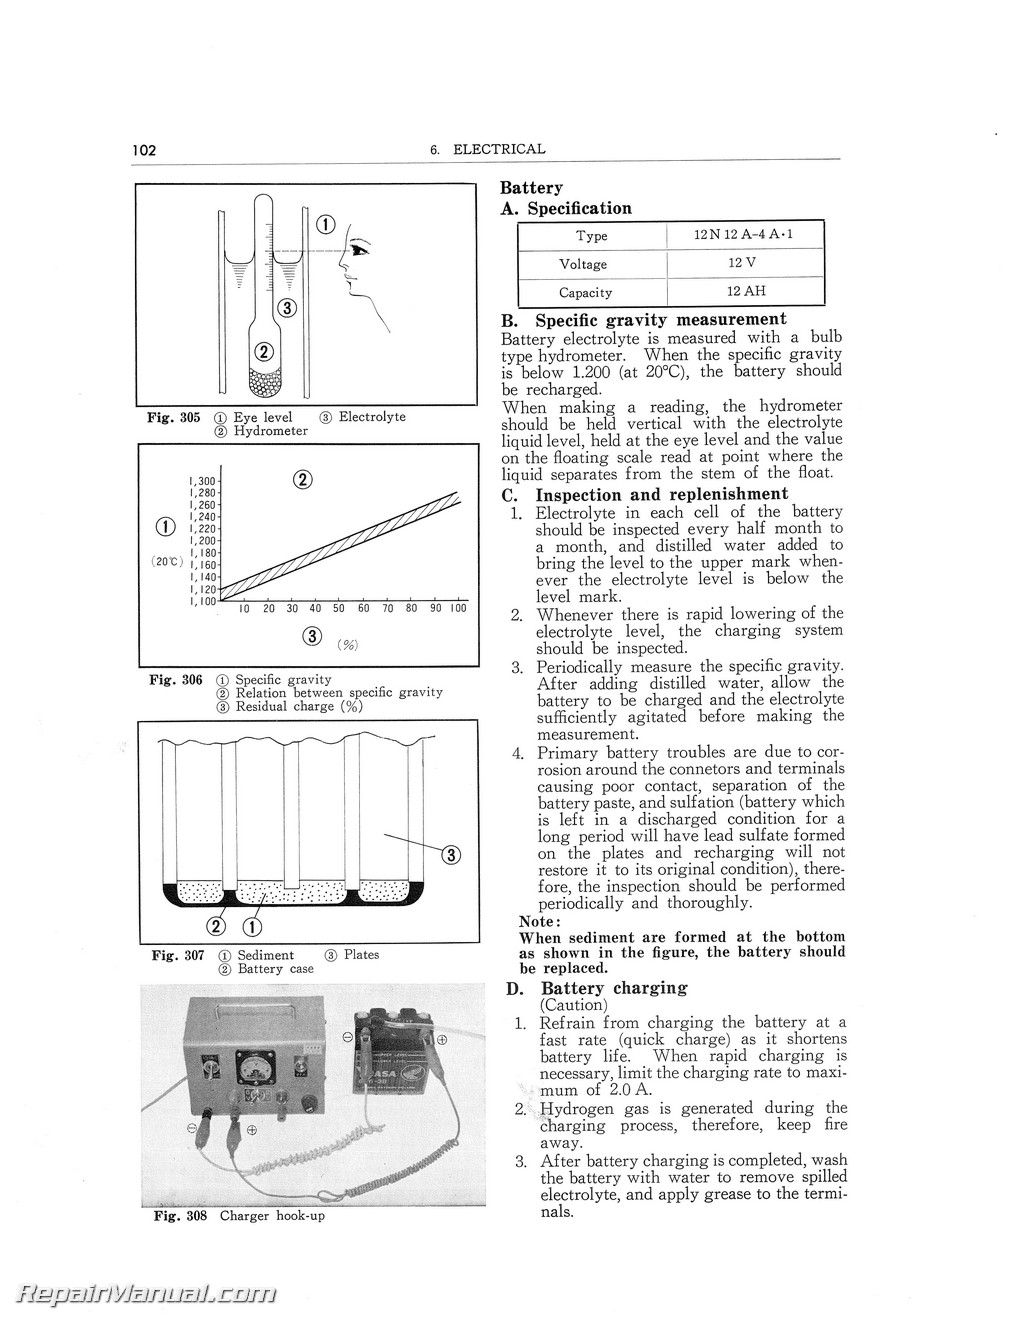 1974 Honda Cb550 Service Manual